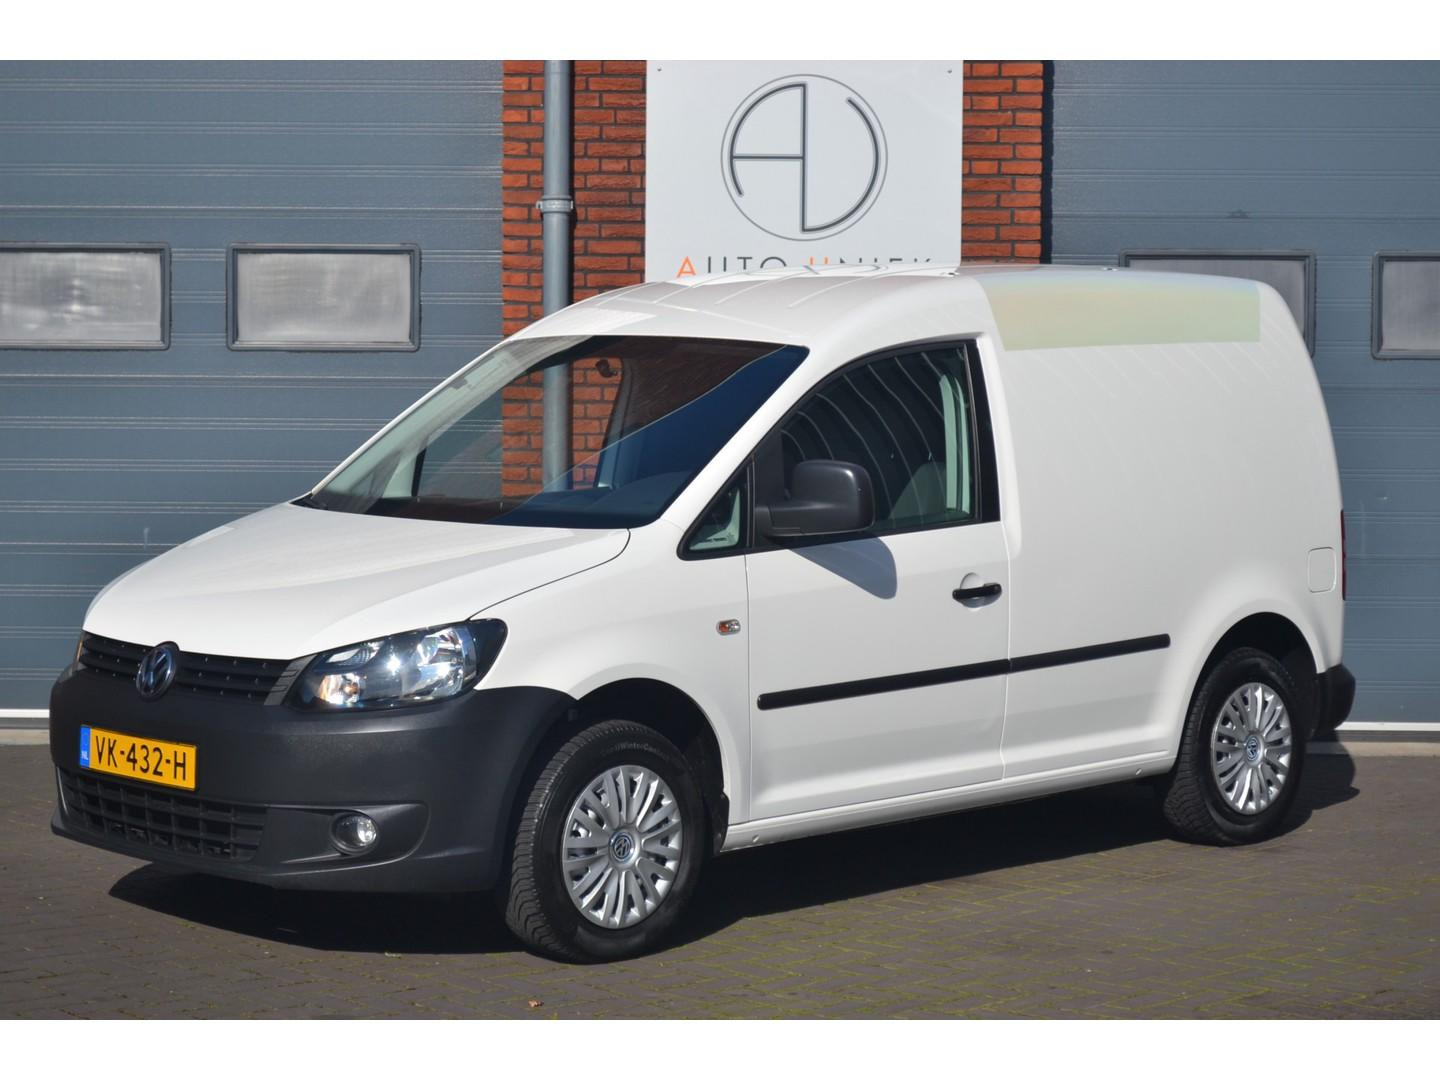 Volkswagen Caddy 1.6 tdi bmt, 102pk, airco, navigatie, cruise control, pdc